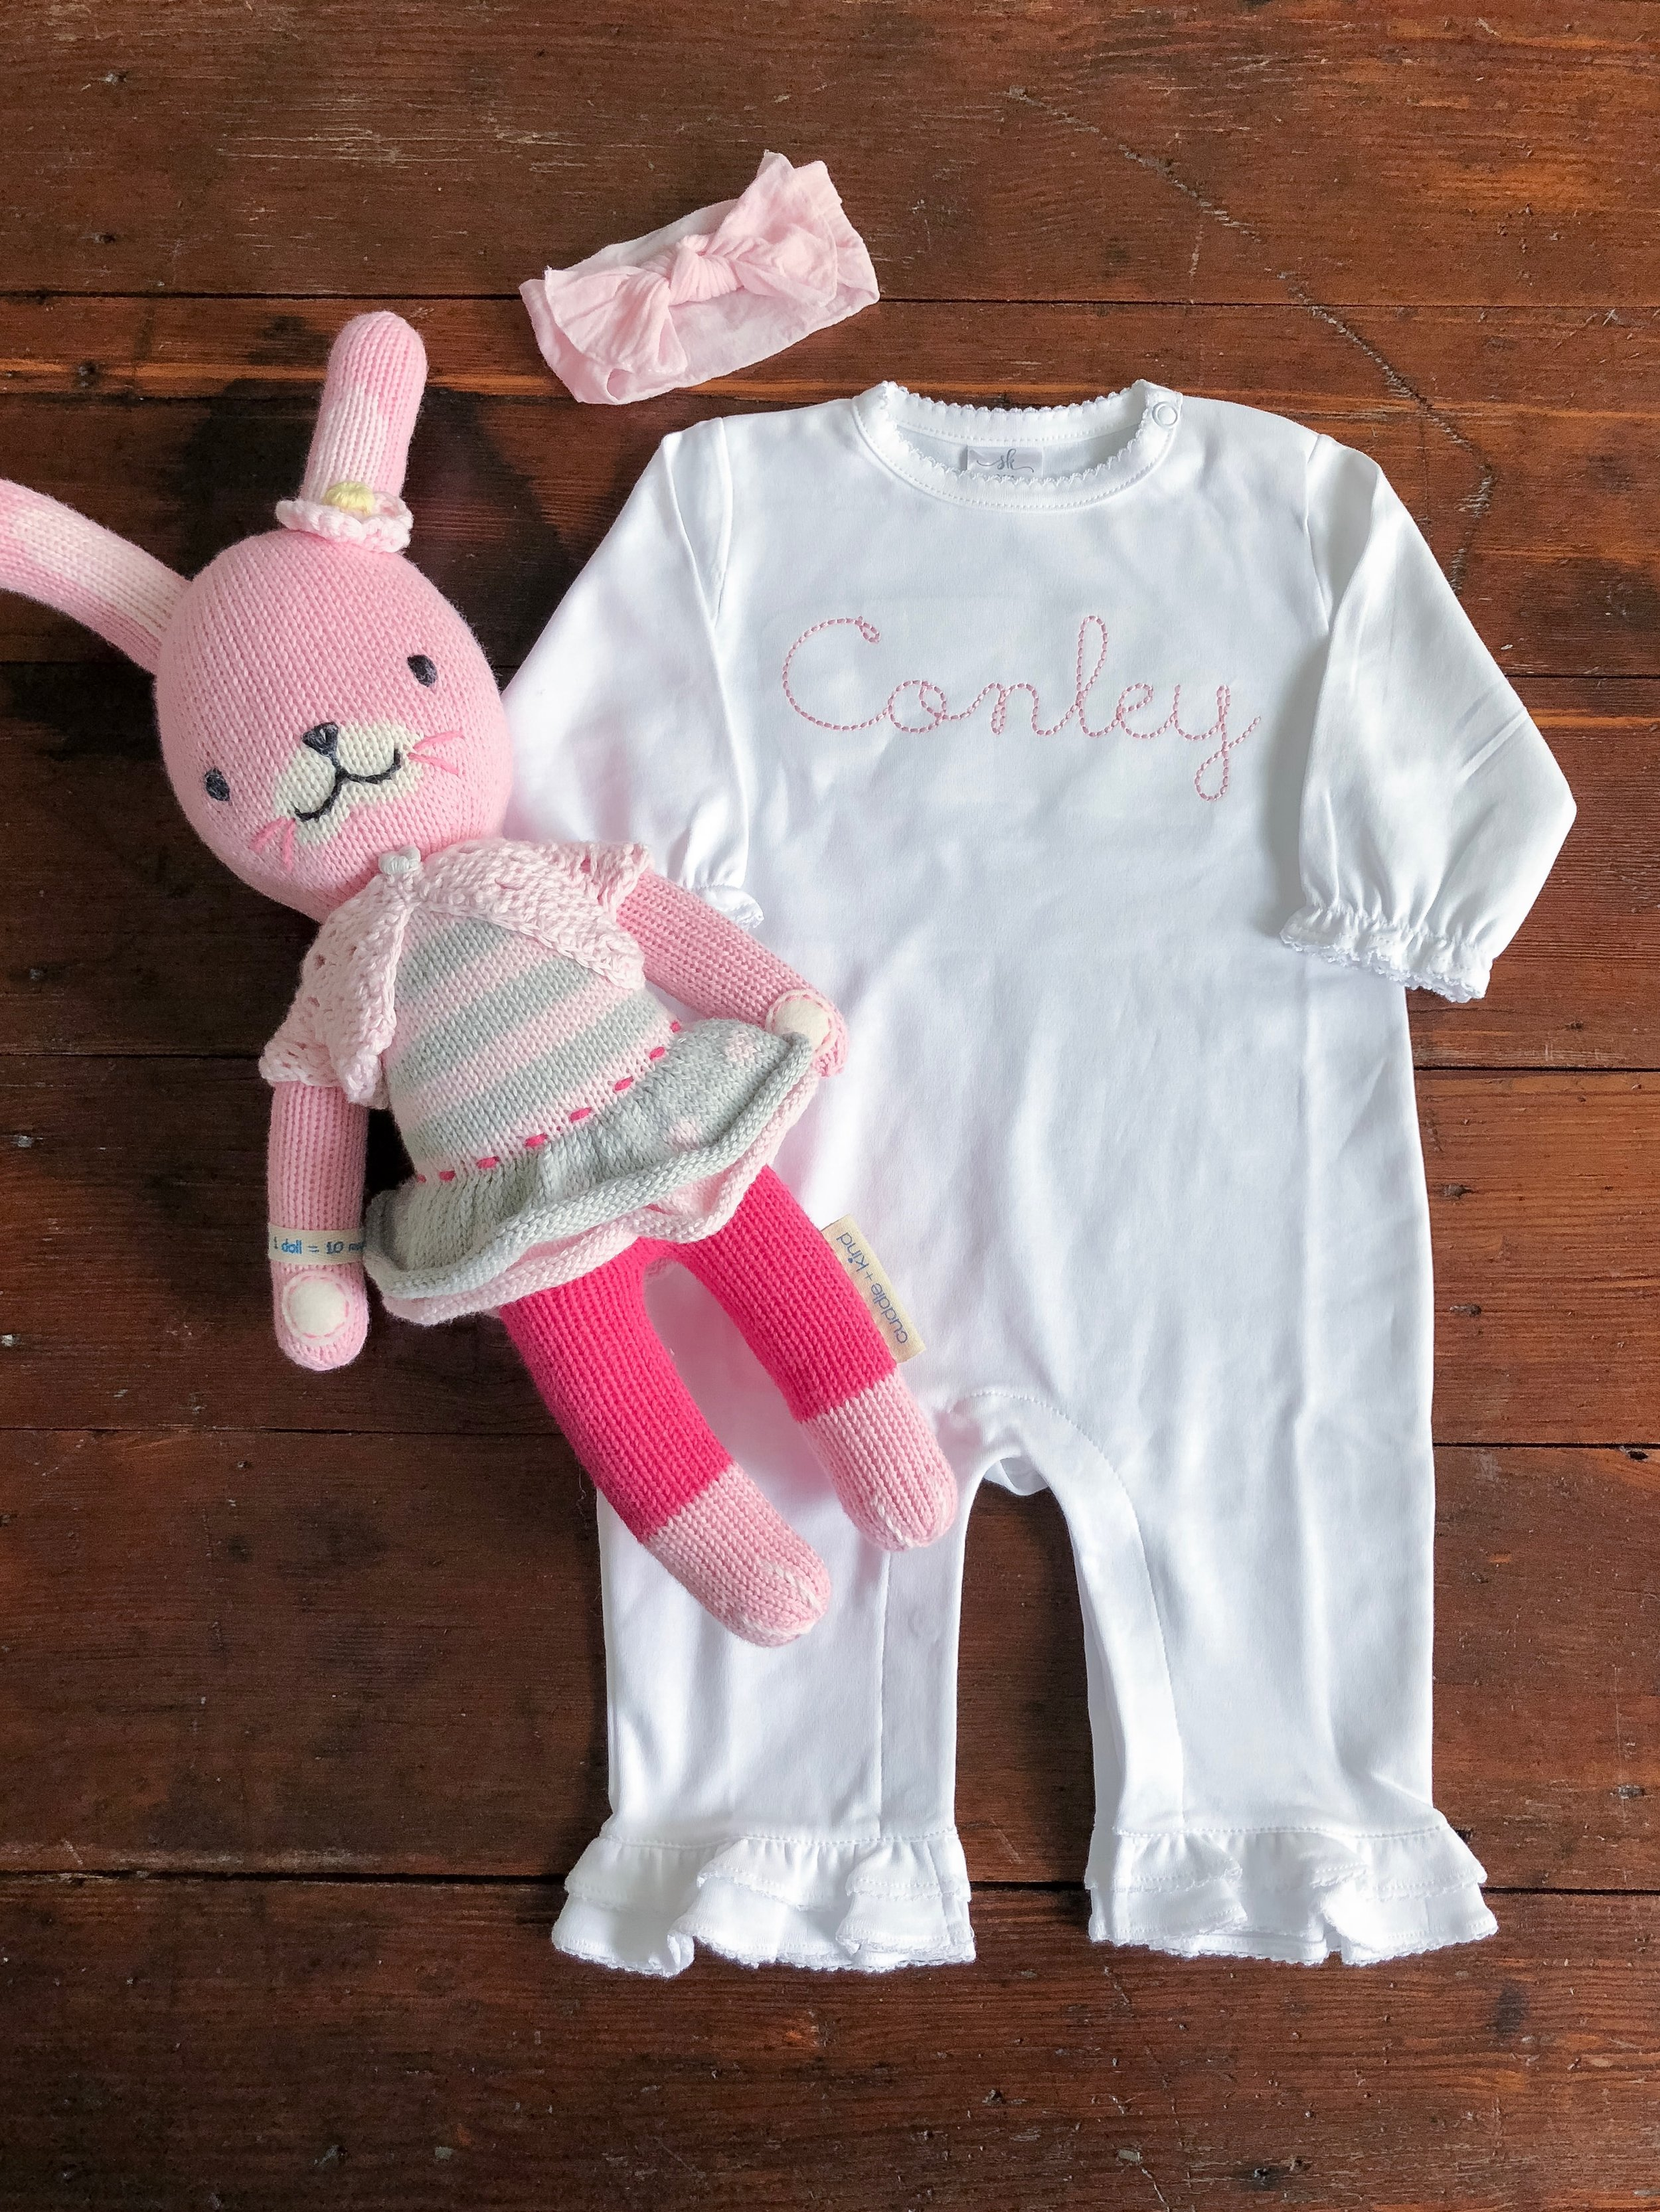 How sweet is this onesie from SKCreations?!